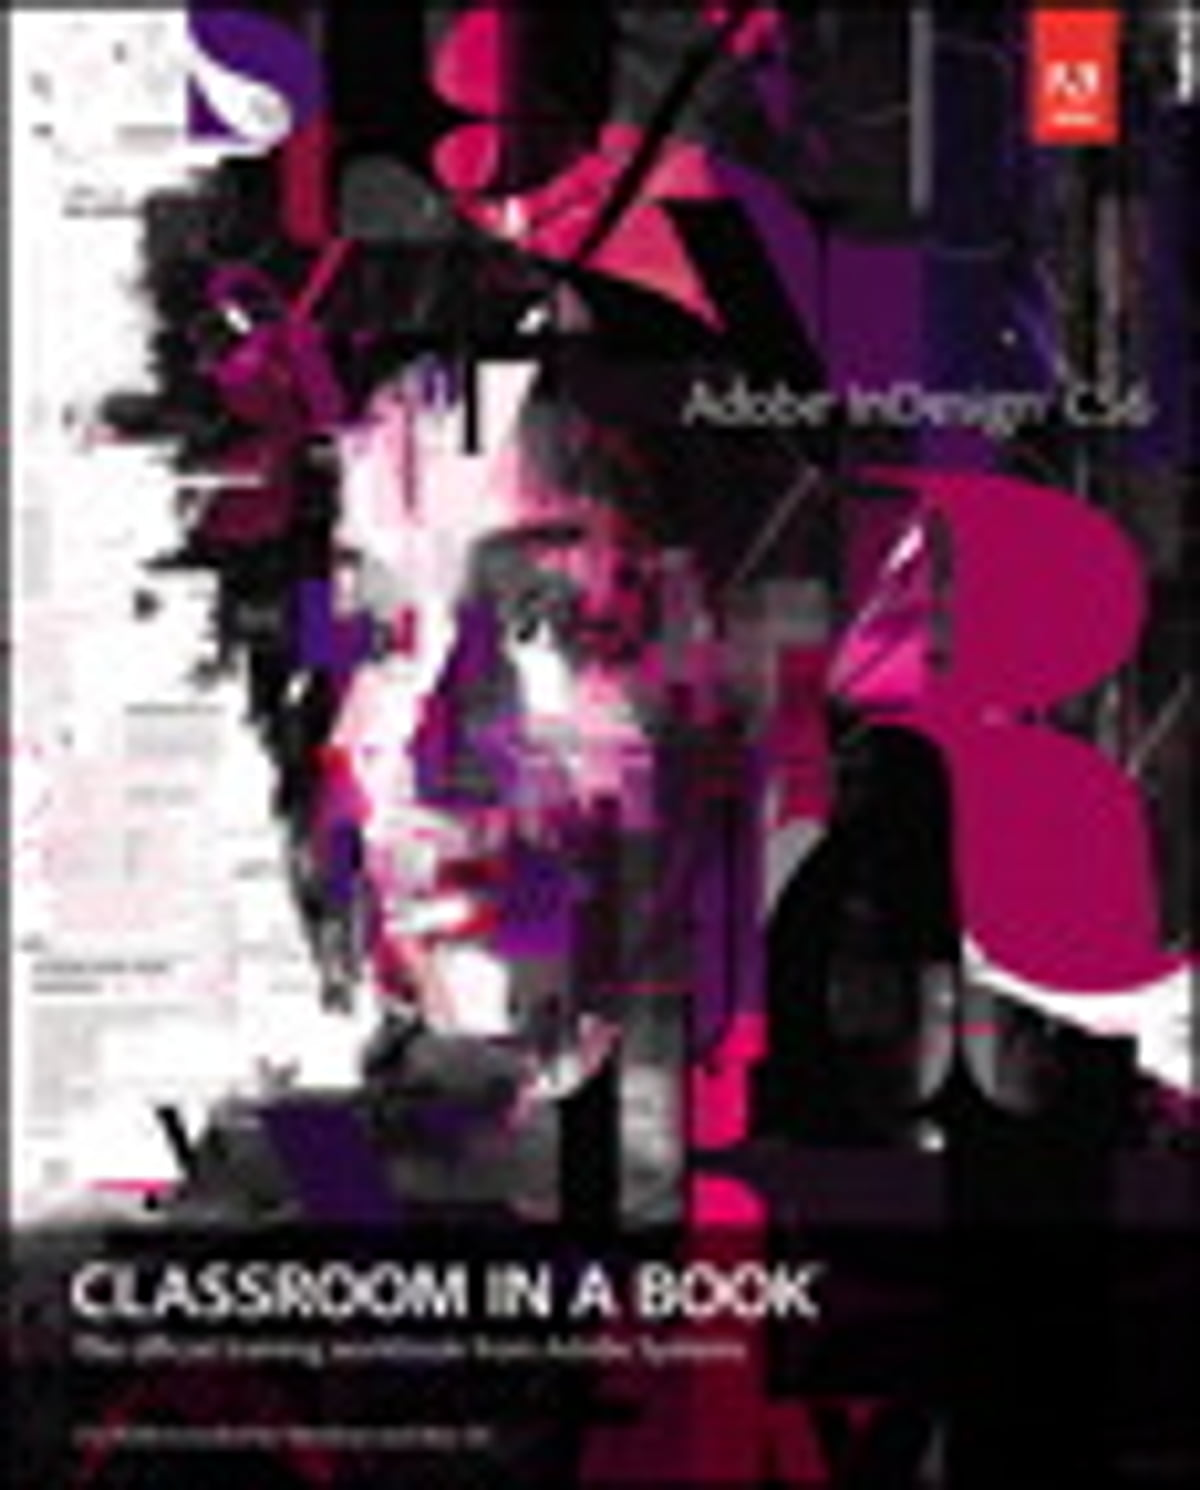 adobe indesign cs6 classroom in a book pdf free download